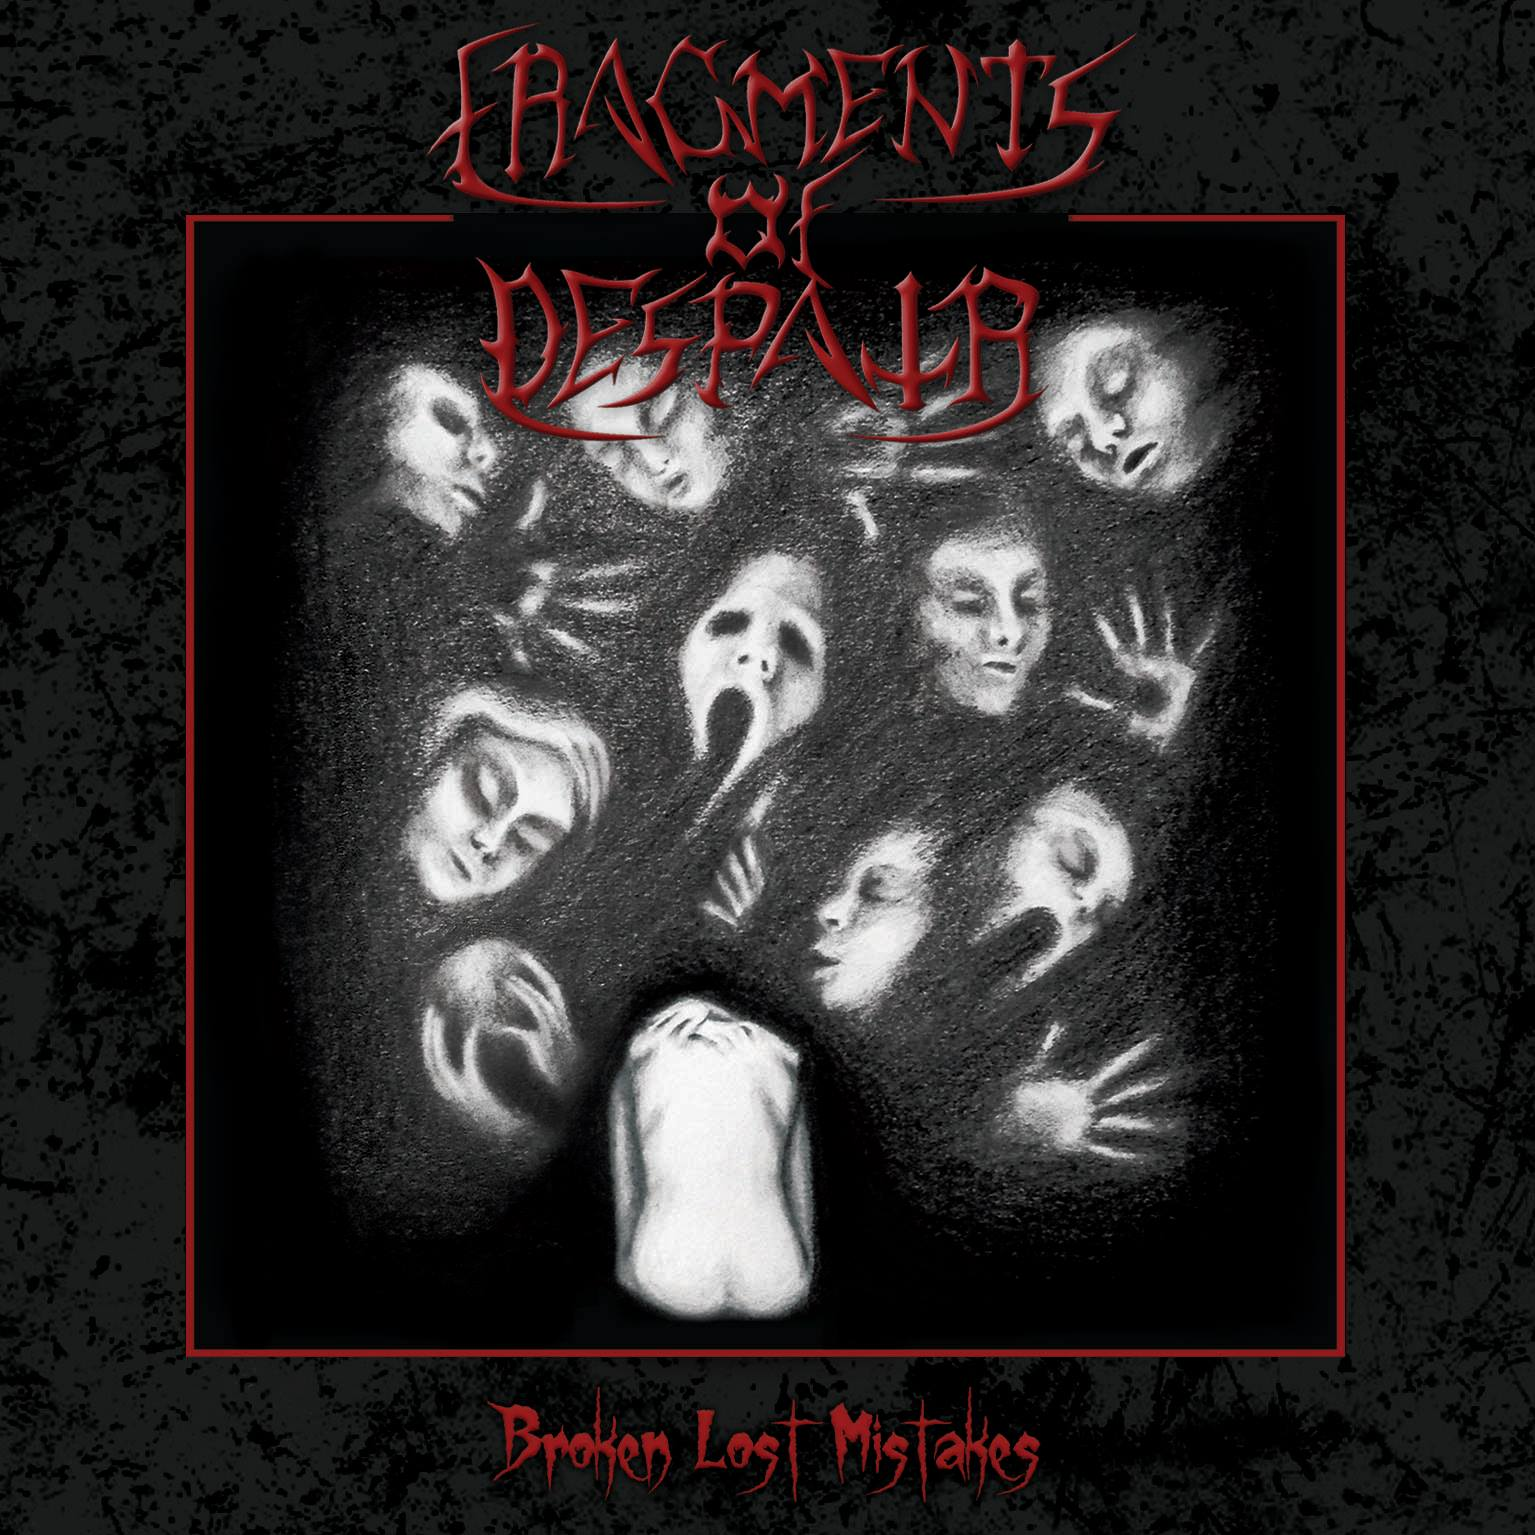 fragments-of-despair-broken-lost-mistakes-ein-cd-review